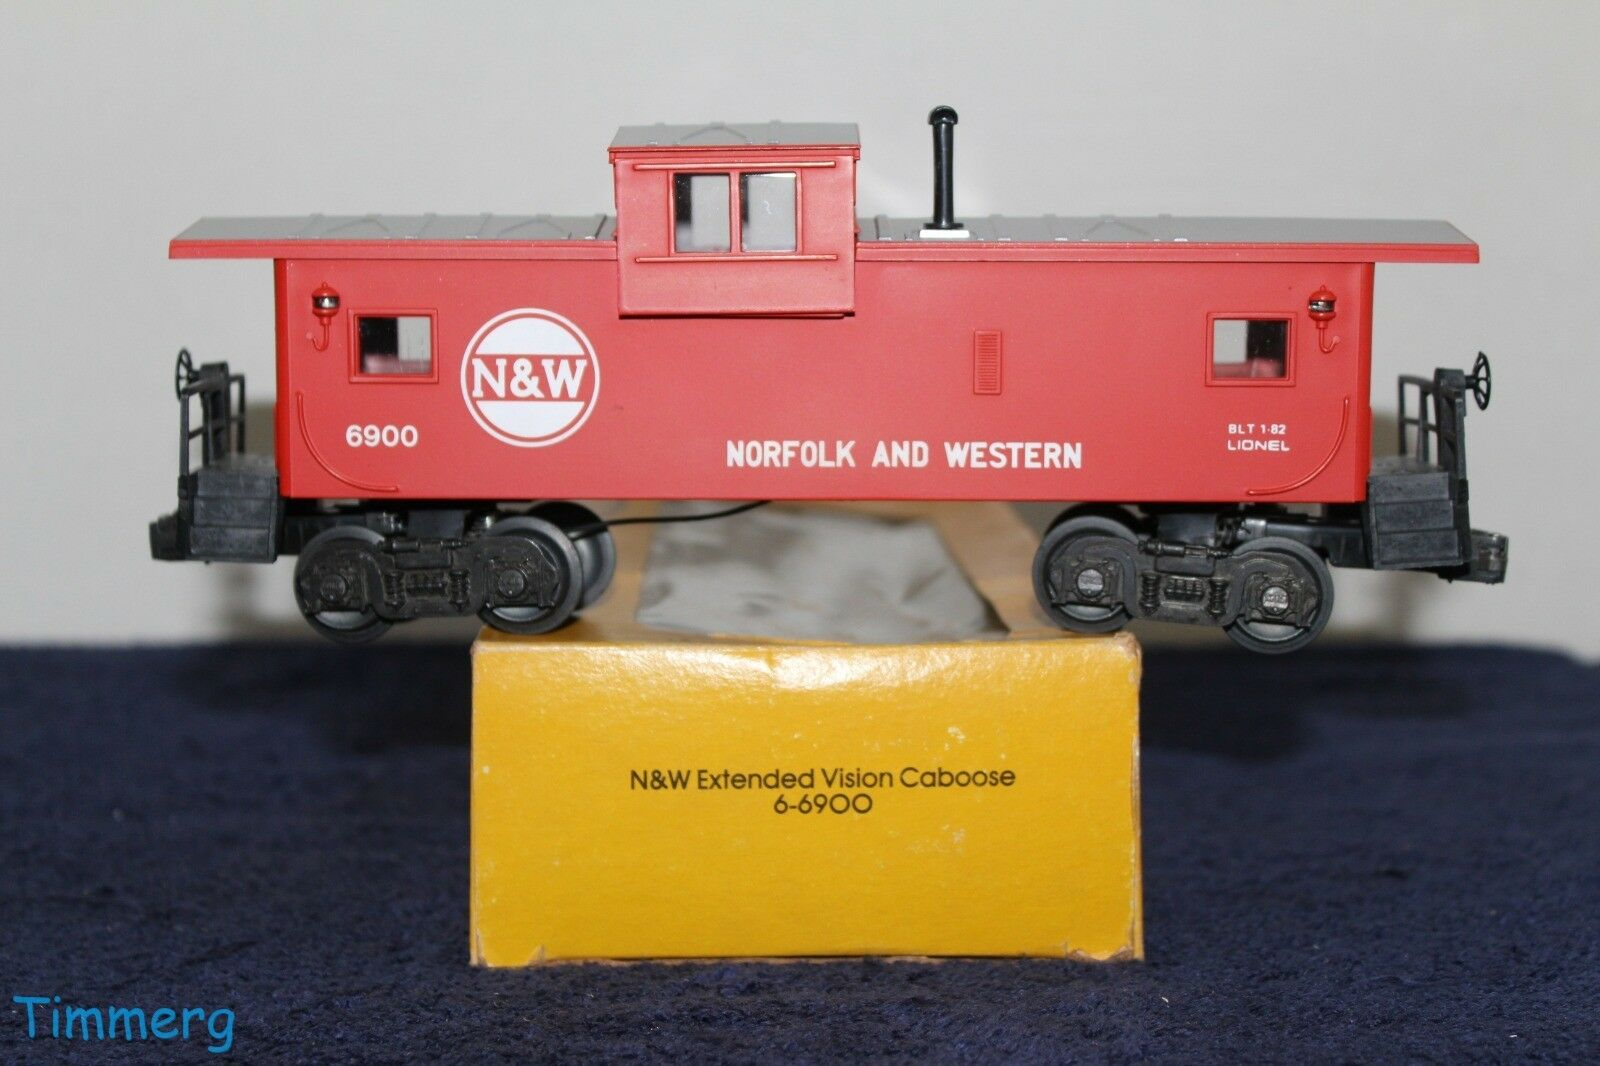 Lionel Trains 9-6900 N&W Norfolk & Western Extended Vision Caboose